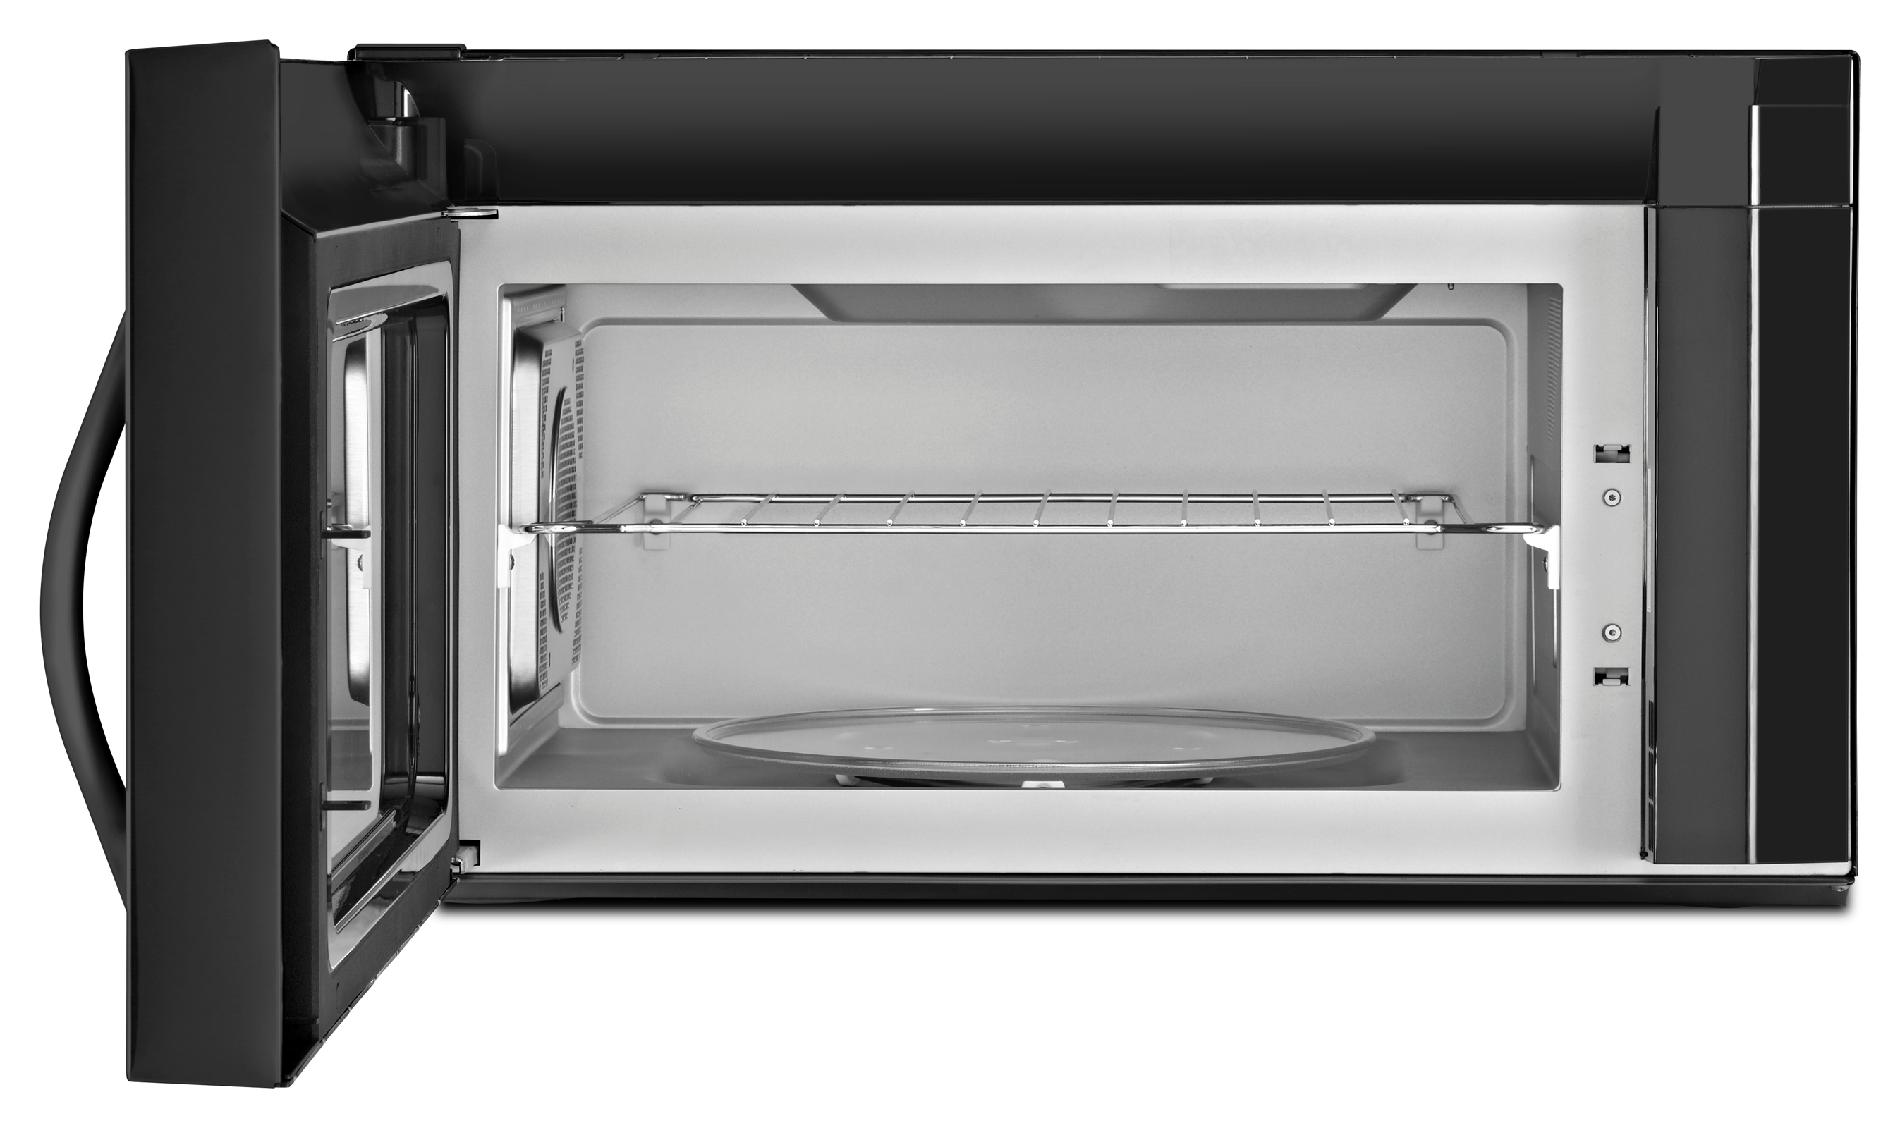 Whirlpool 1.9 cu. ft. Over-the-Range Microwave w/ TimeSavor™ Plus True Convection Cooking System - Black